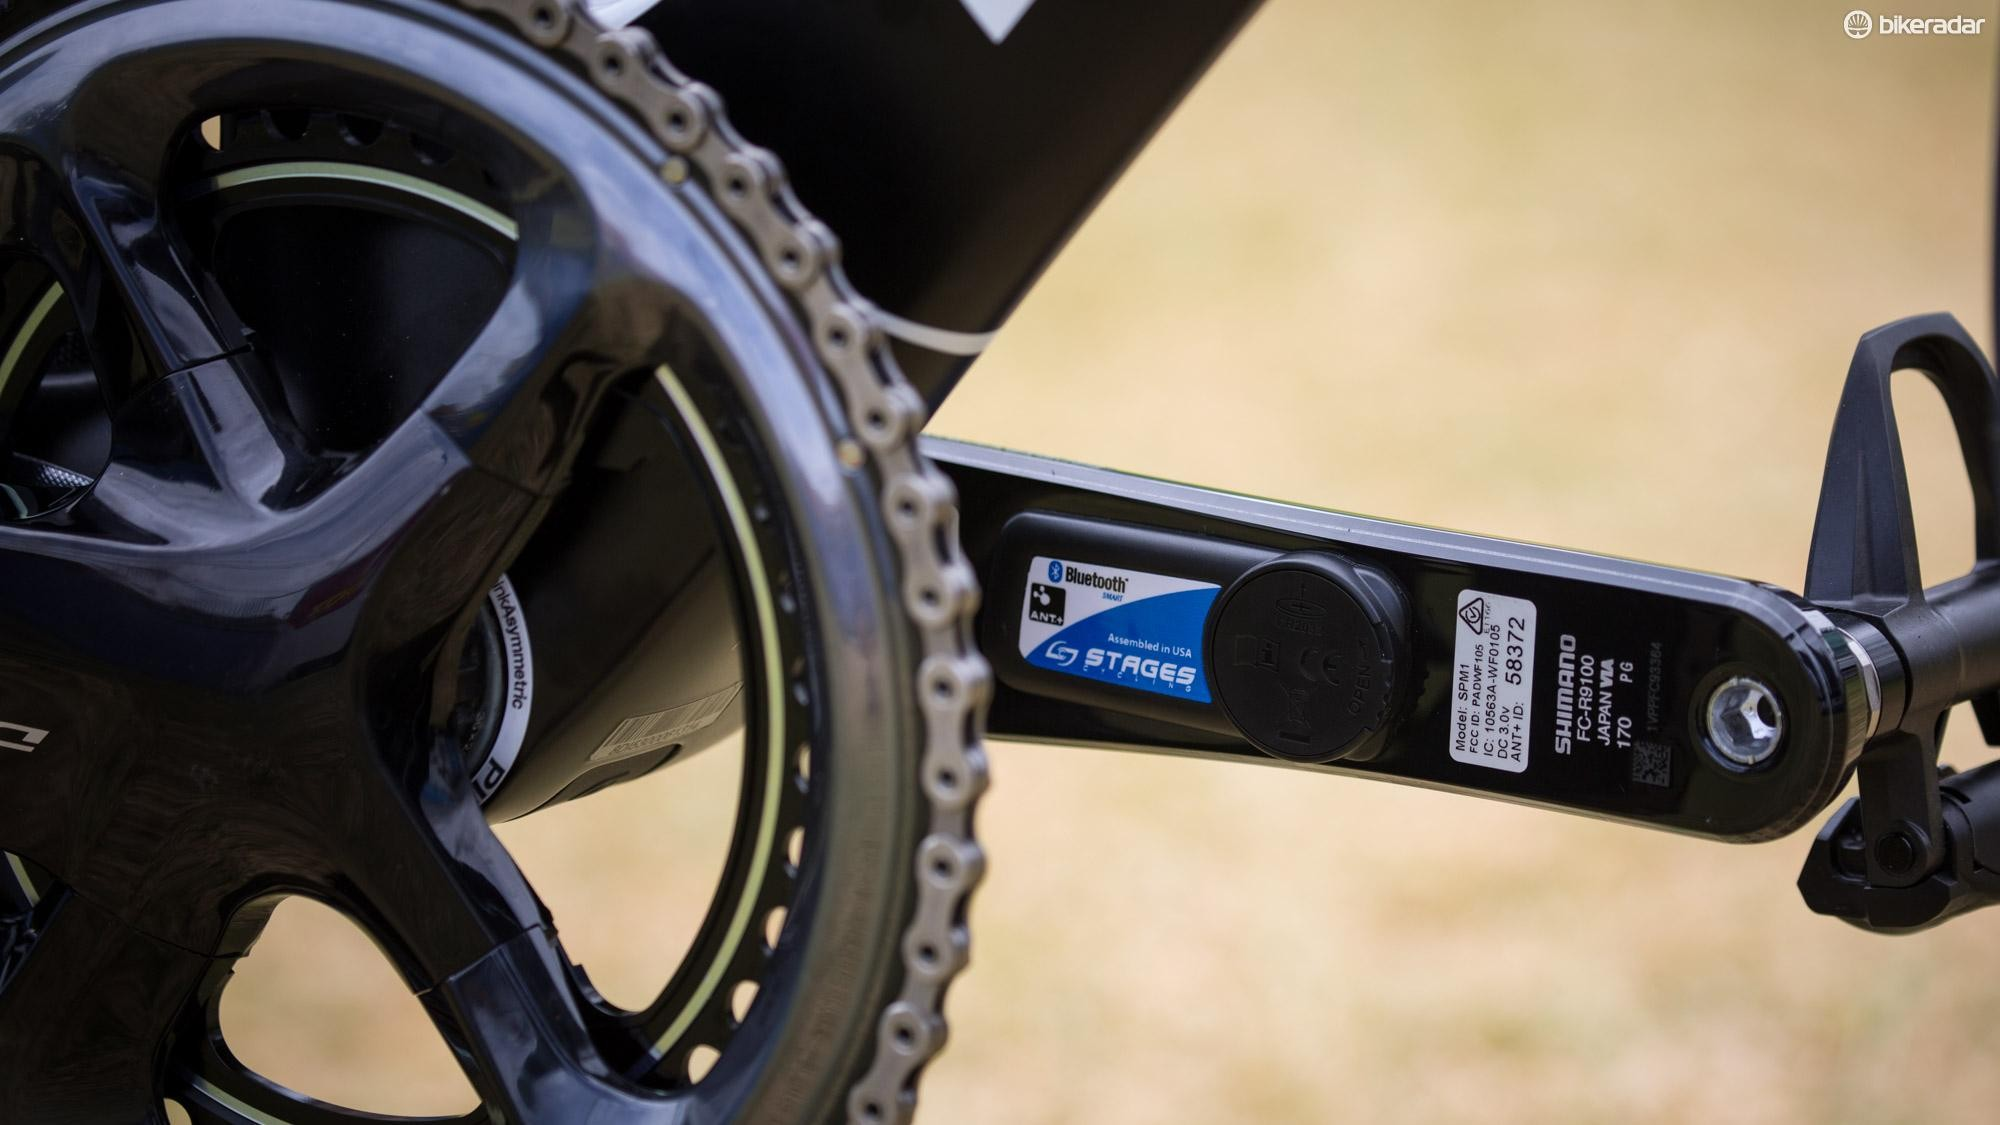 Last month Shimano said it would be providing power meters to Team Sky, however all the team bikes were equipped with Stages meters